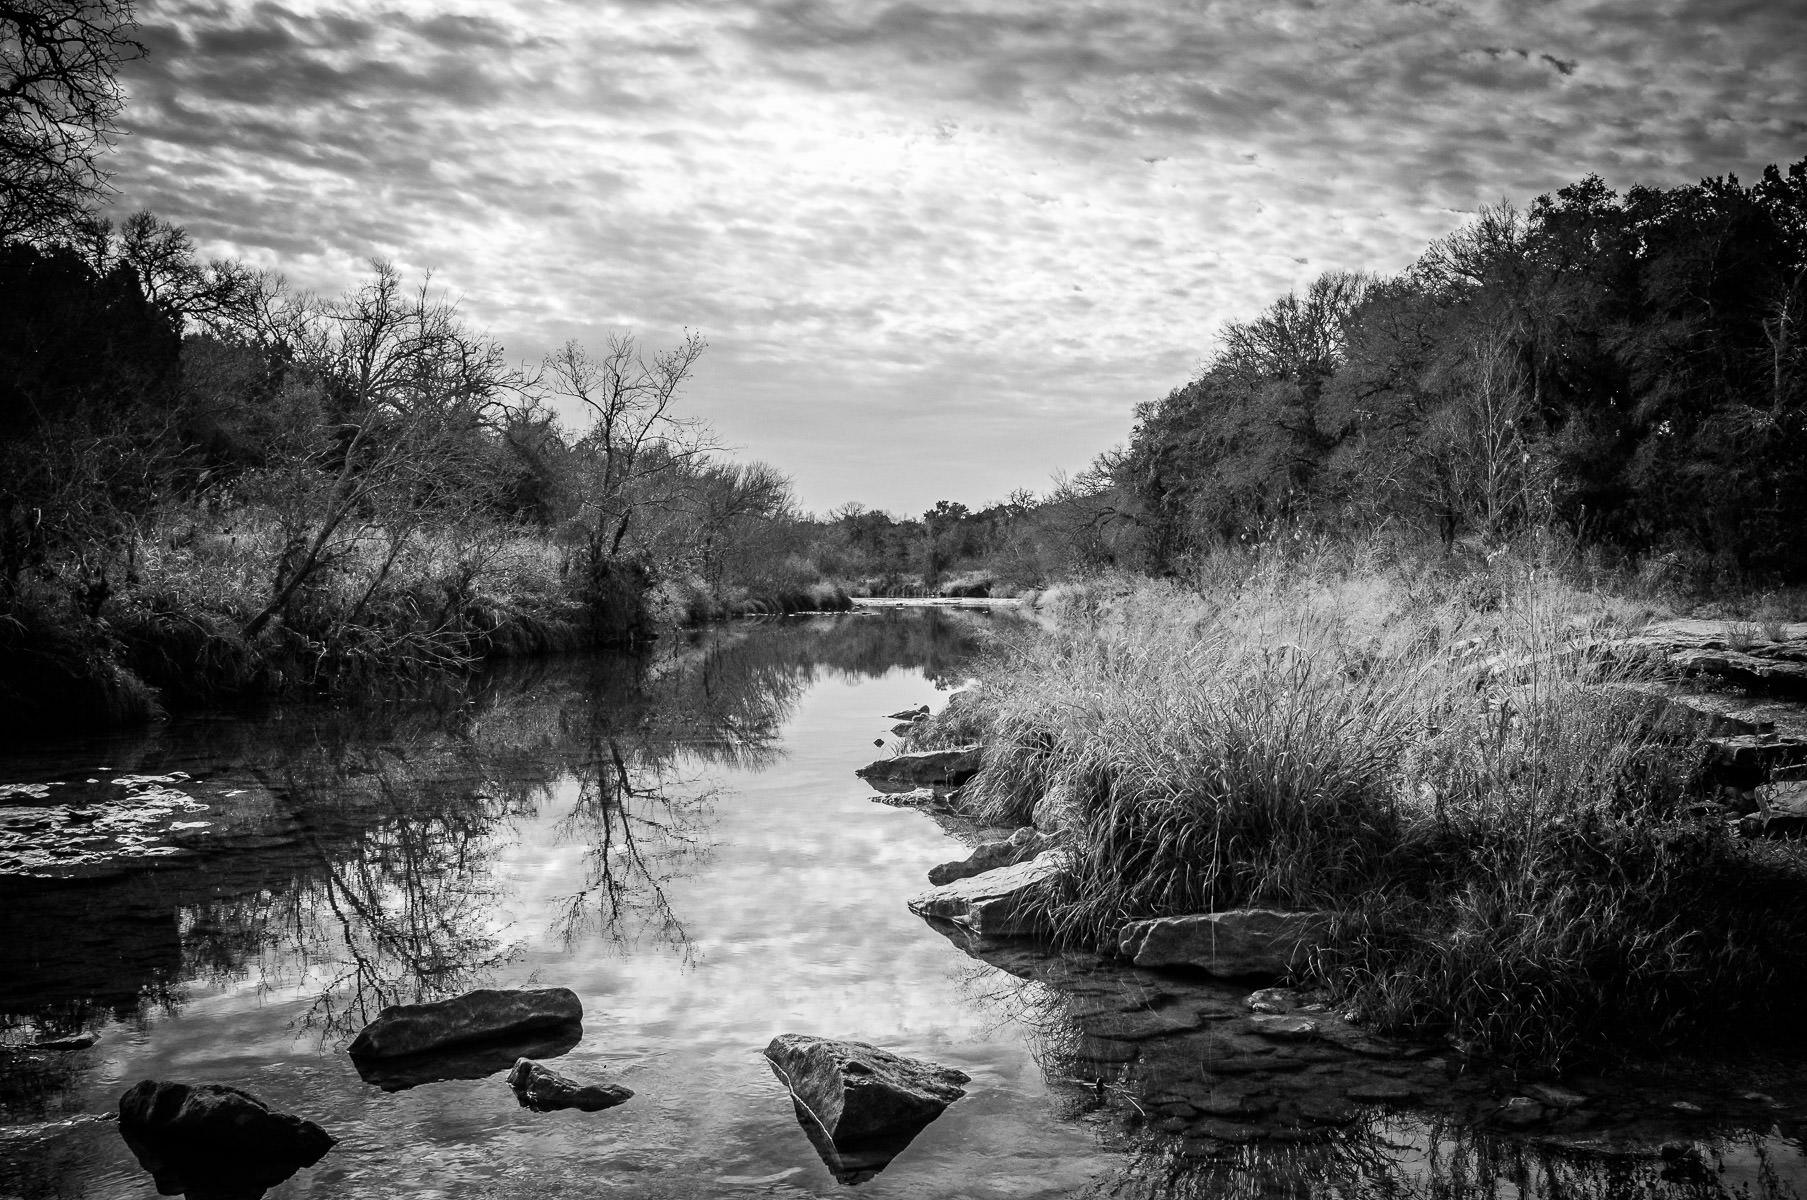 The Paluxy River flows through Texas' Dinosaur Valley State Park.